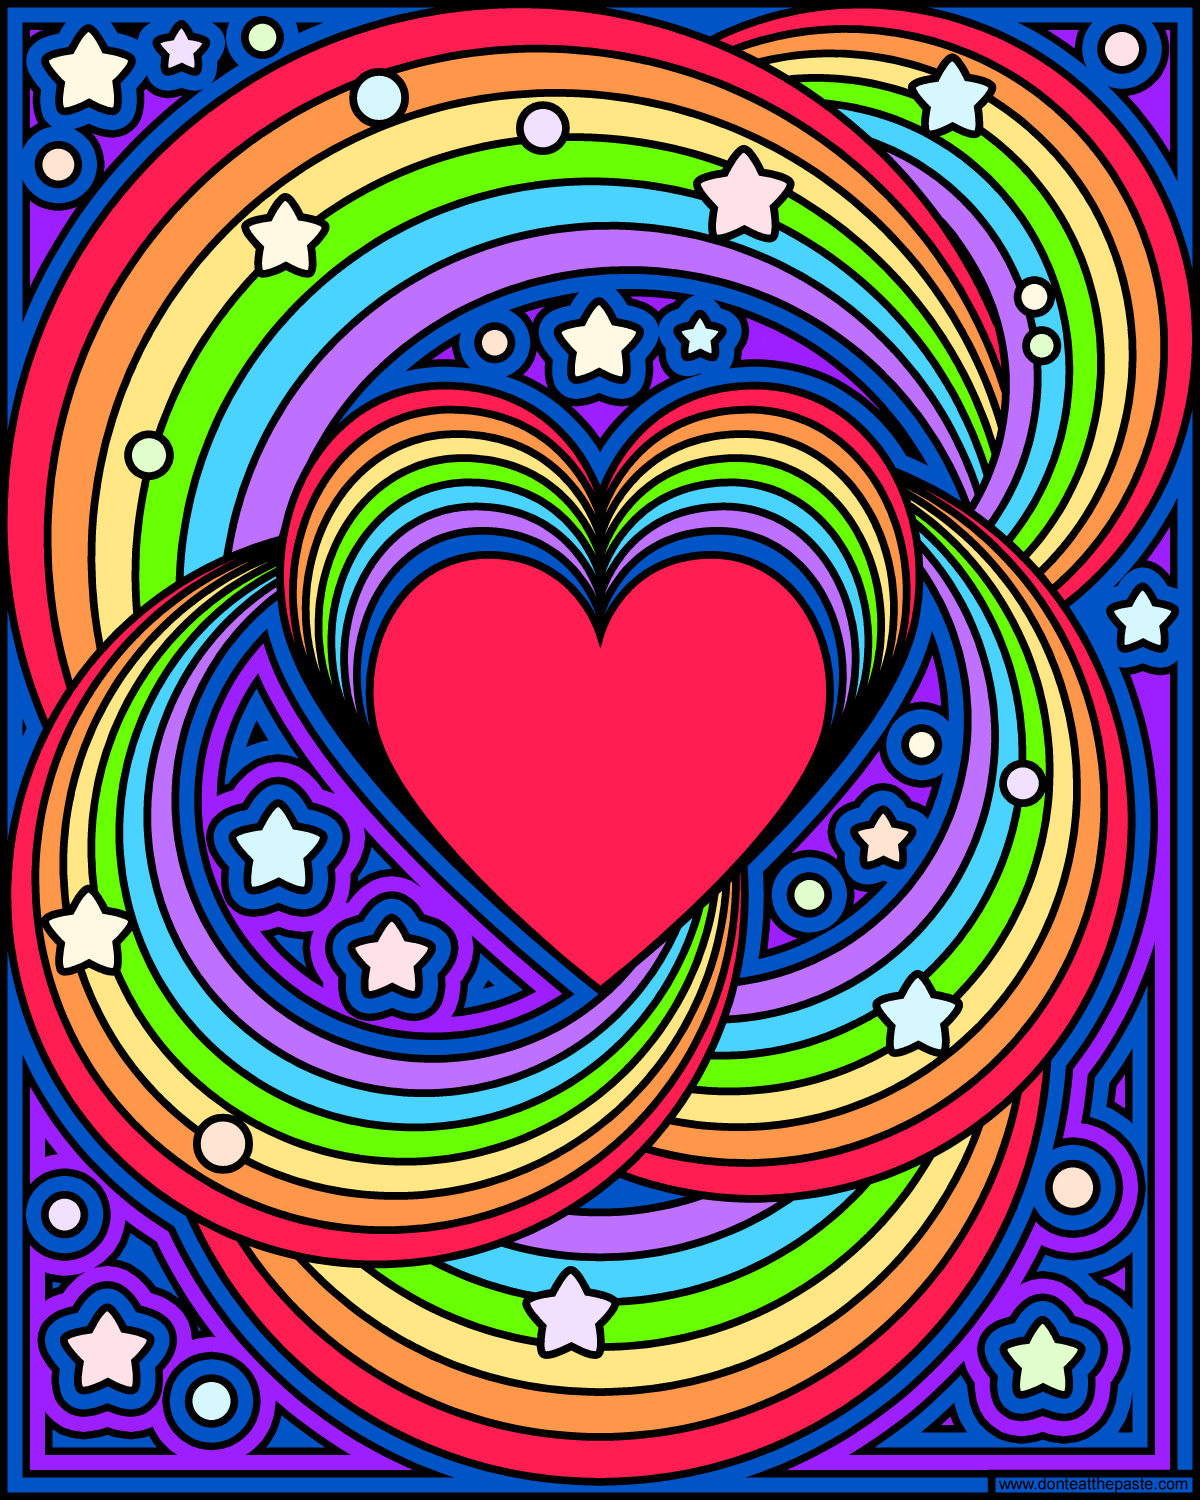 Don't Eat the Paste: Rainbow Love coloring page